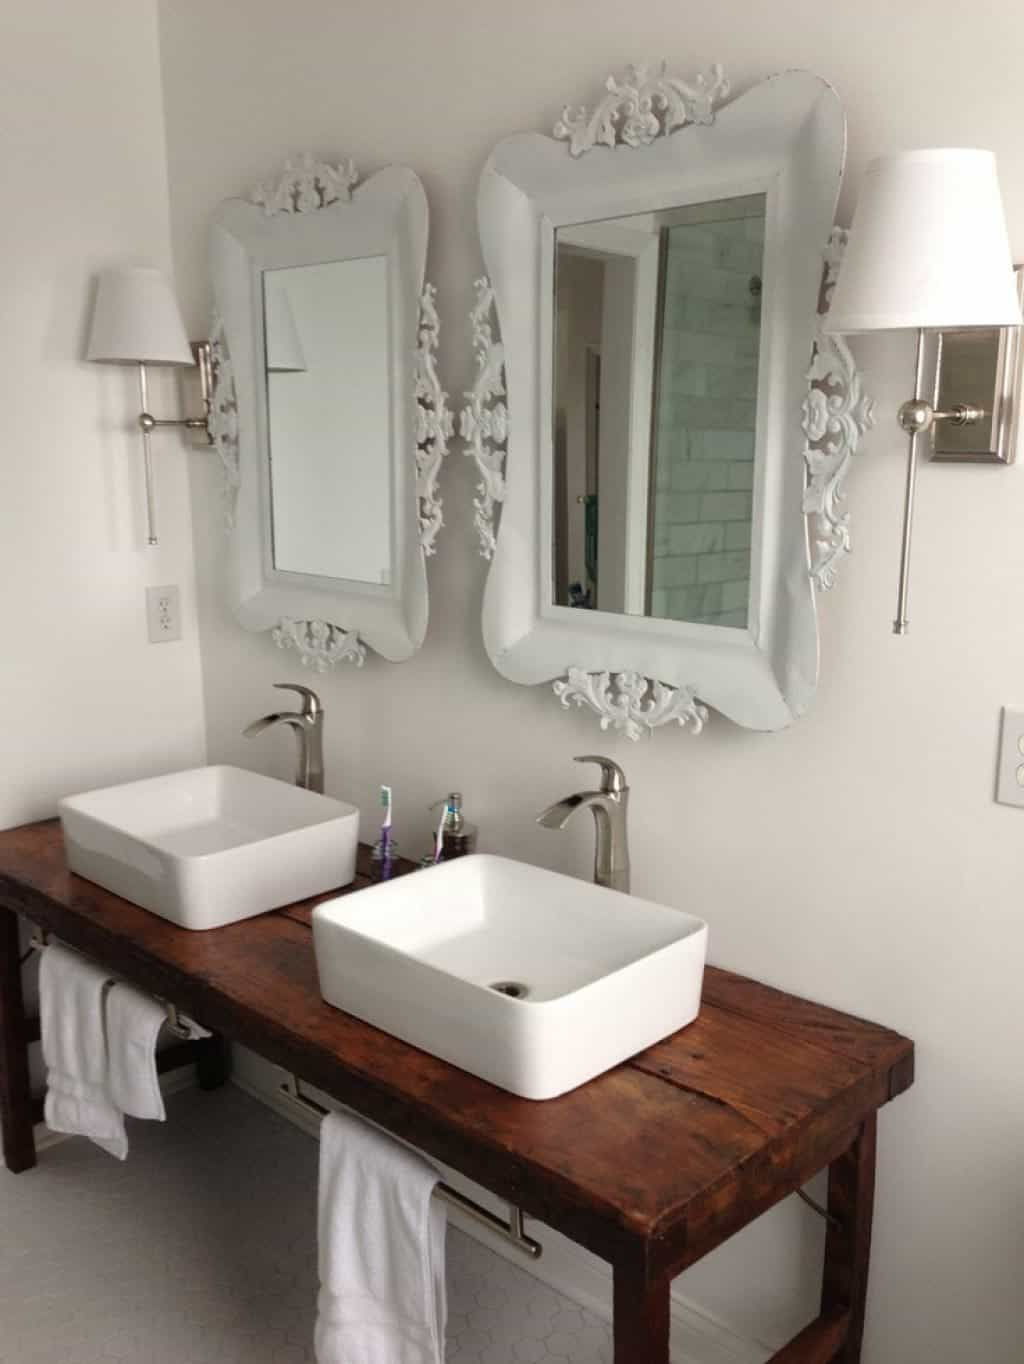 Square Vessel Sinks Installed In The Bathroom With Ornate